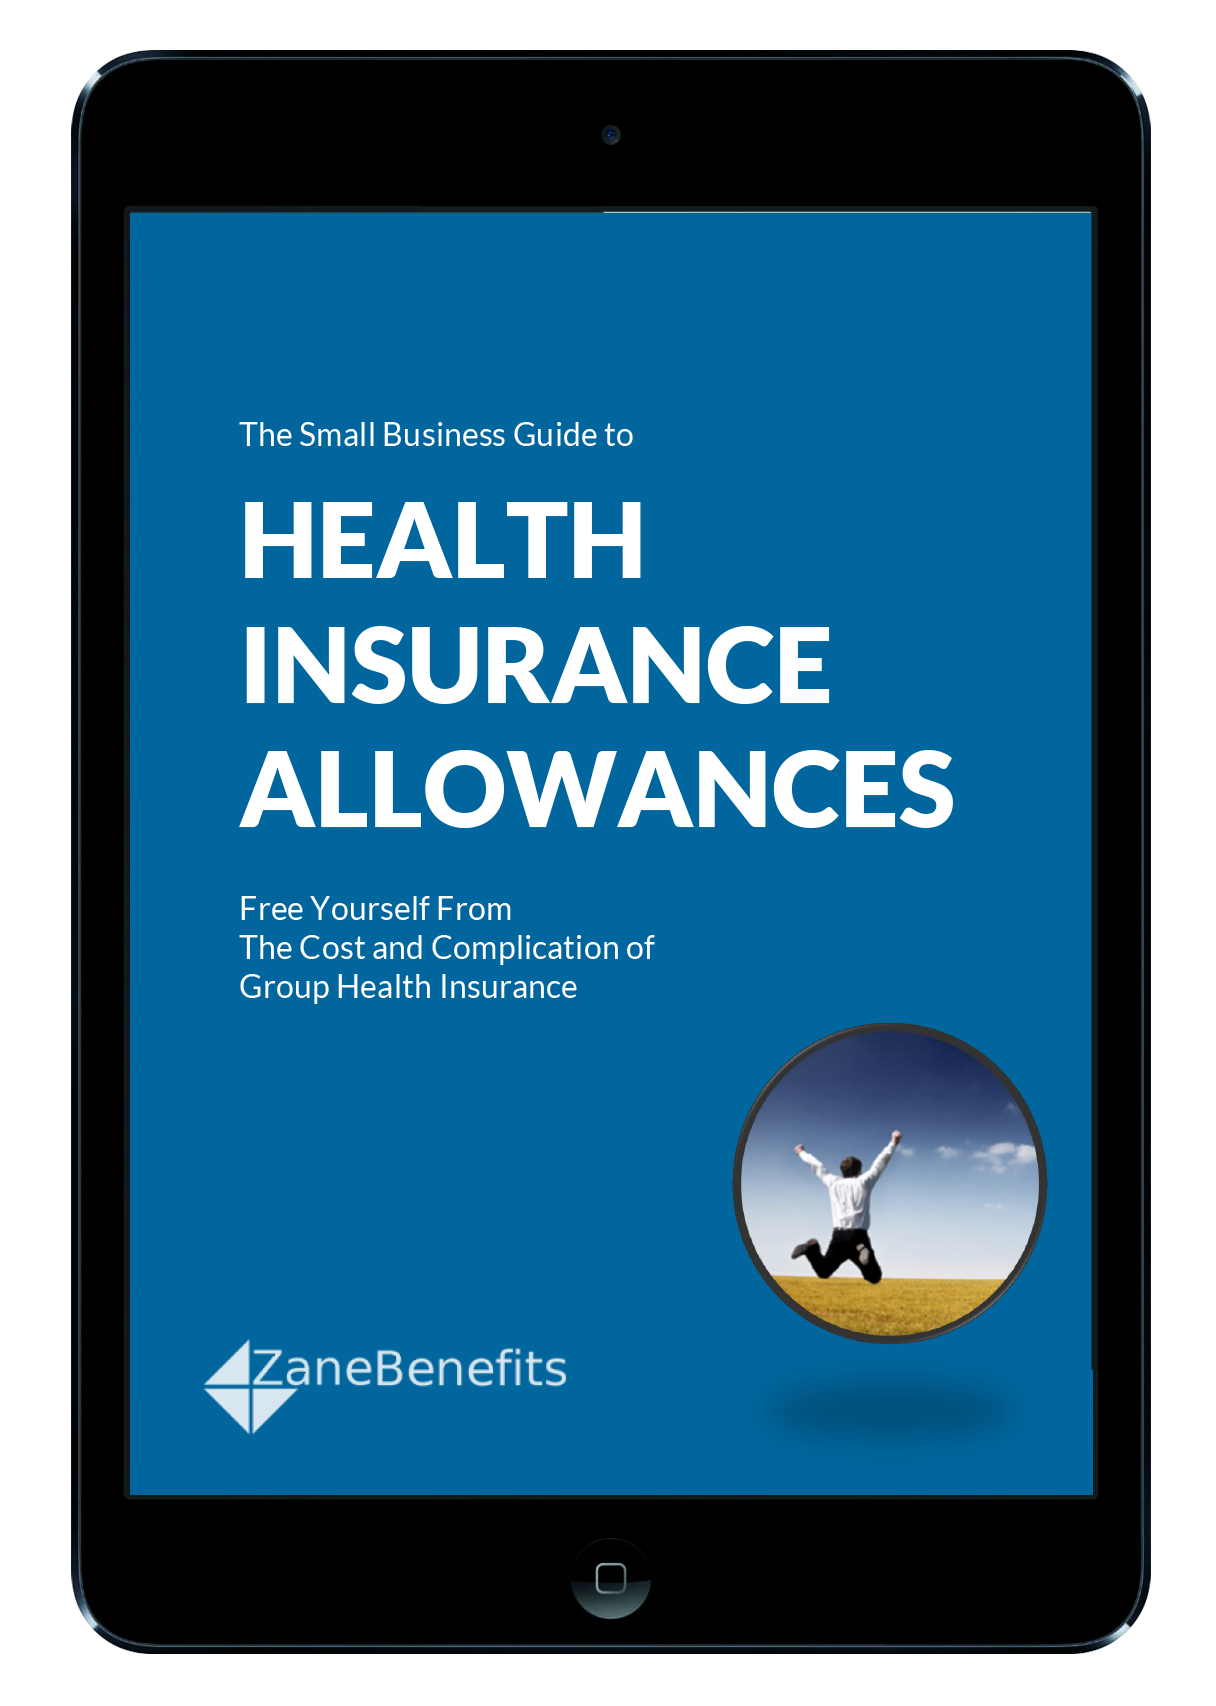 The Small Business Guide to Health Insurance Allowances